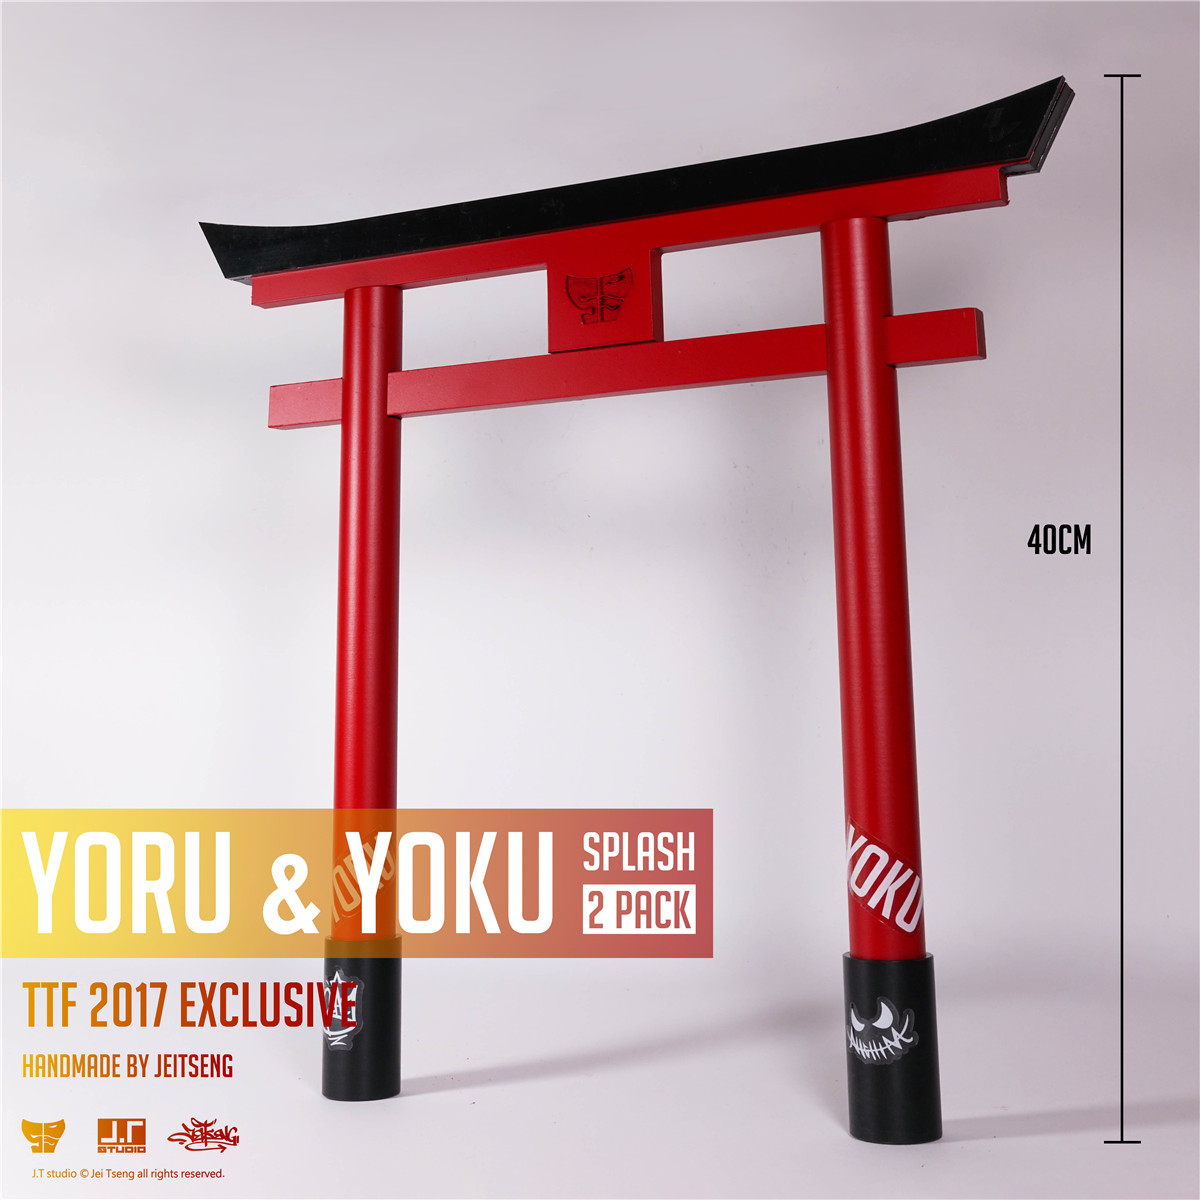 TORII in the 2PACK SET